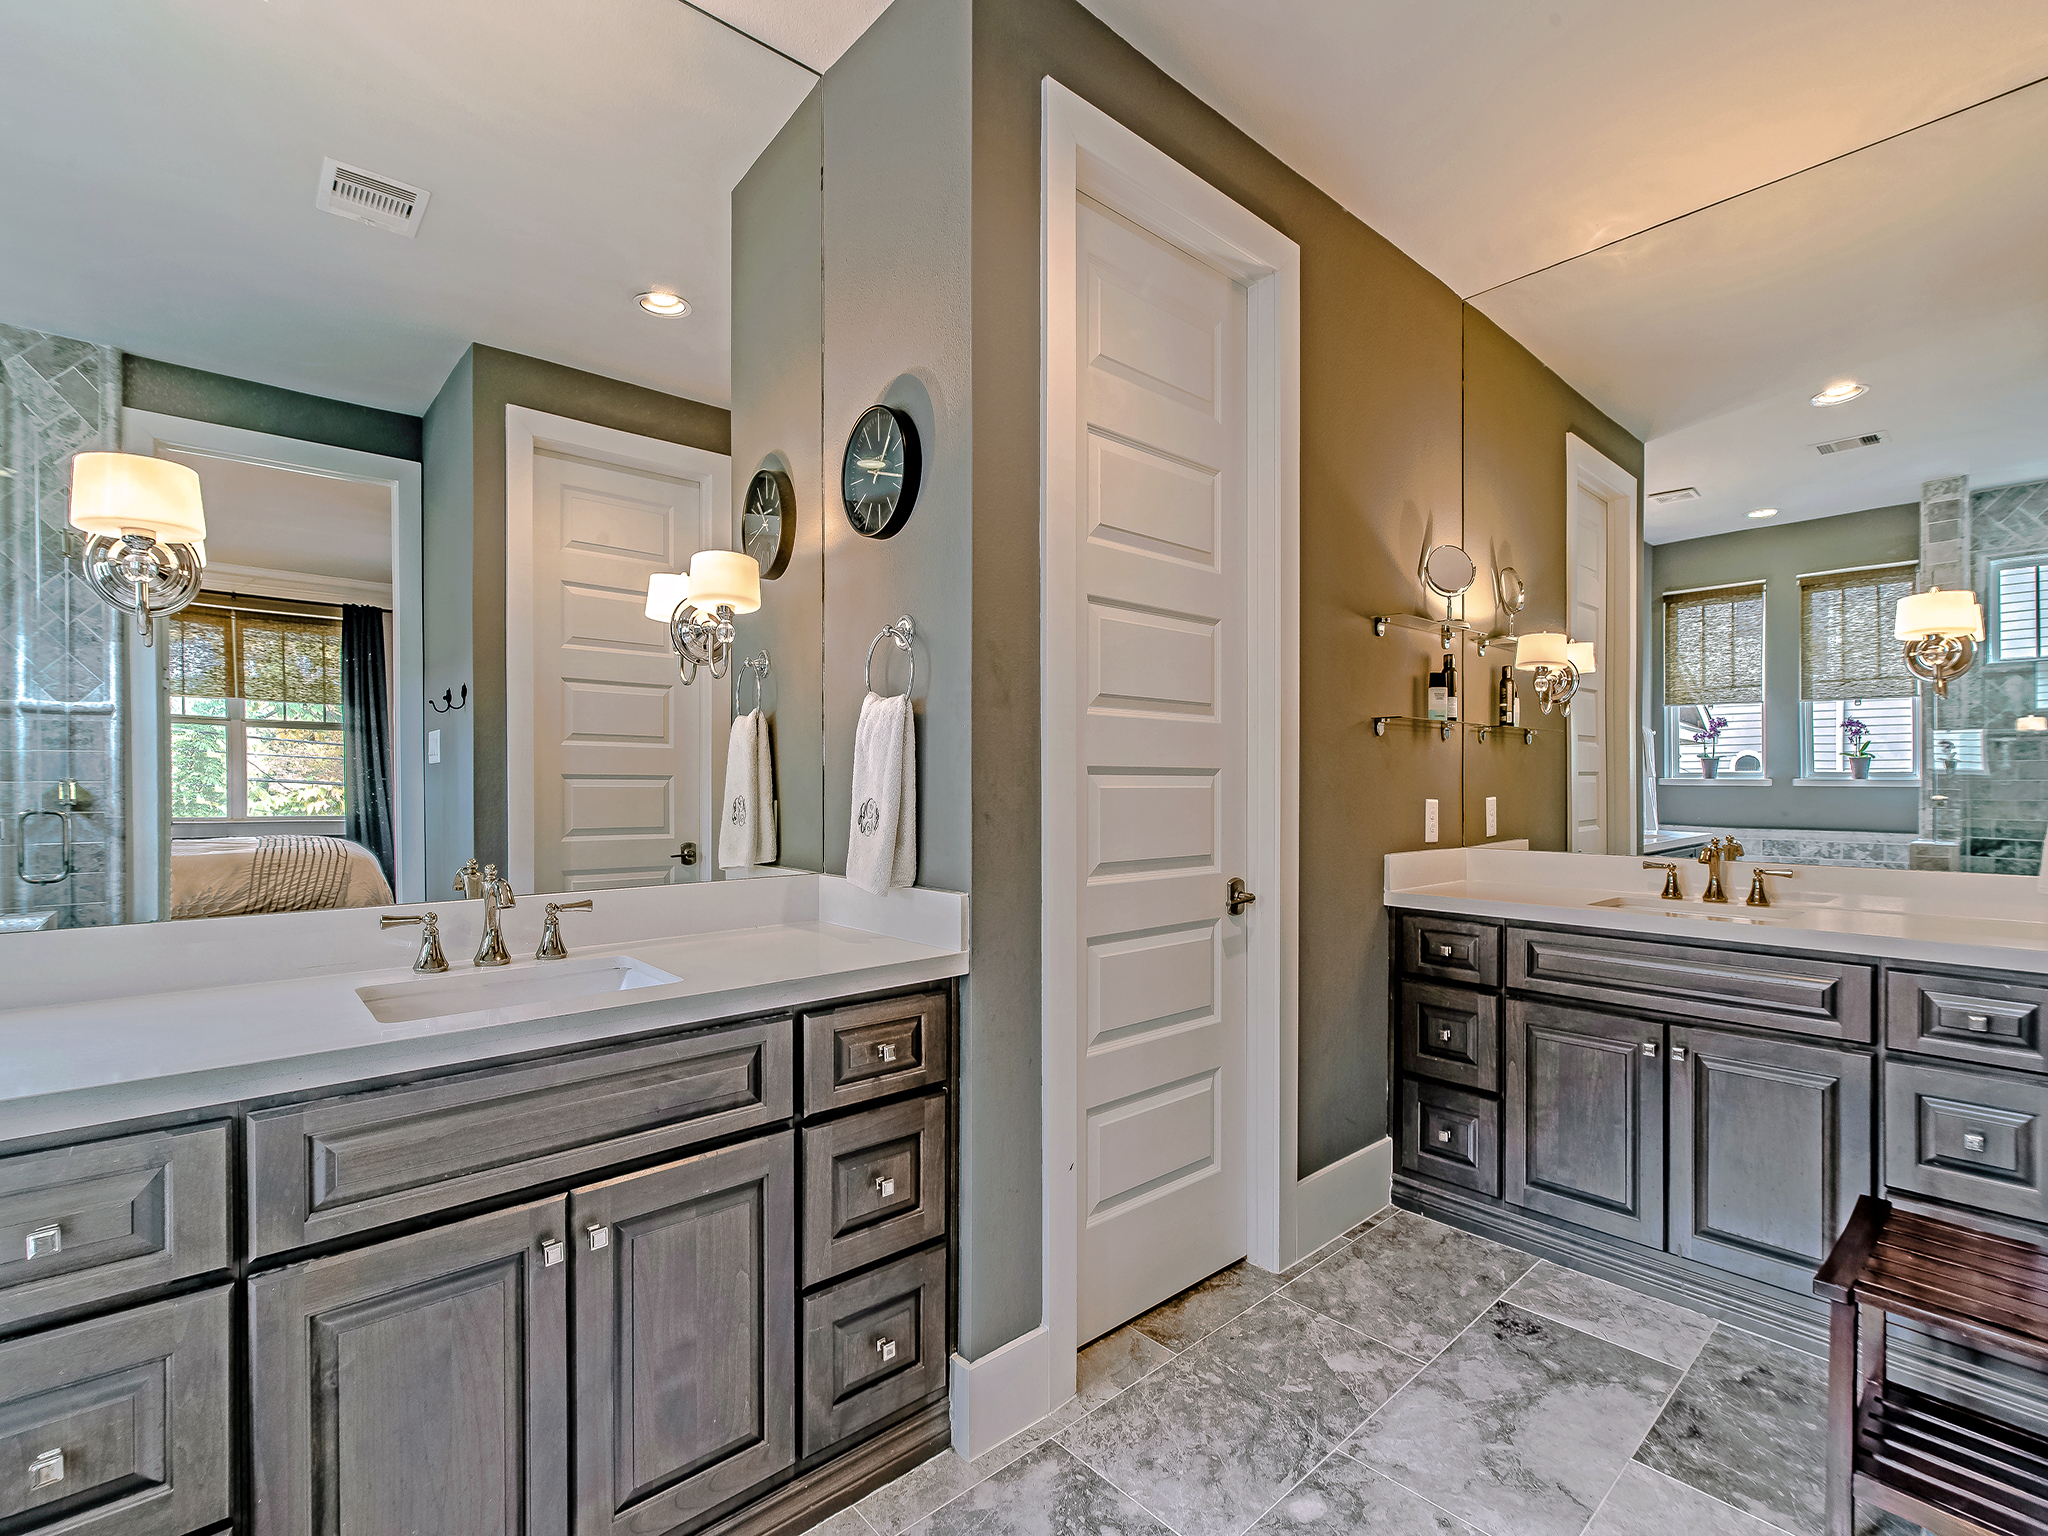 Ensuite master bath with double vanities, soaker tub and shower.